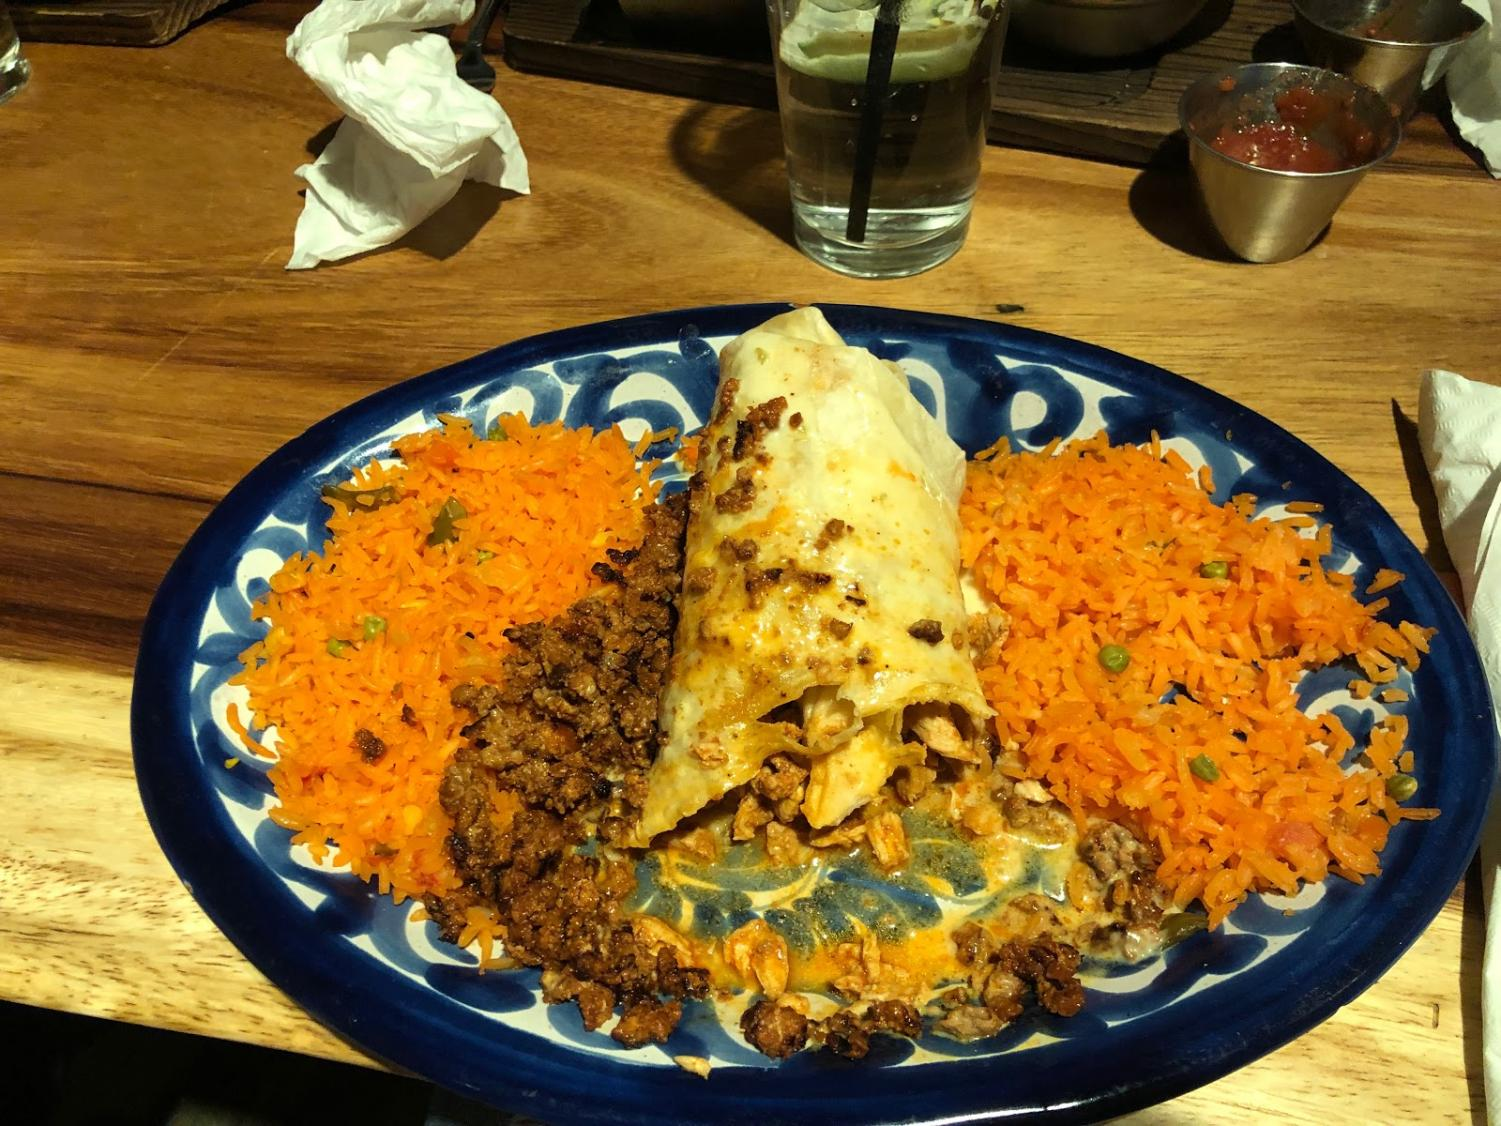 After trying the burrito picante which was stuffed with chicken, chorizo, queso and had a side of mexican rice, this burrito definitely hit the spot!